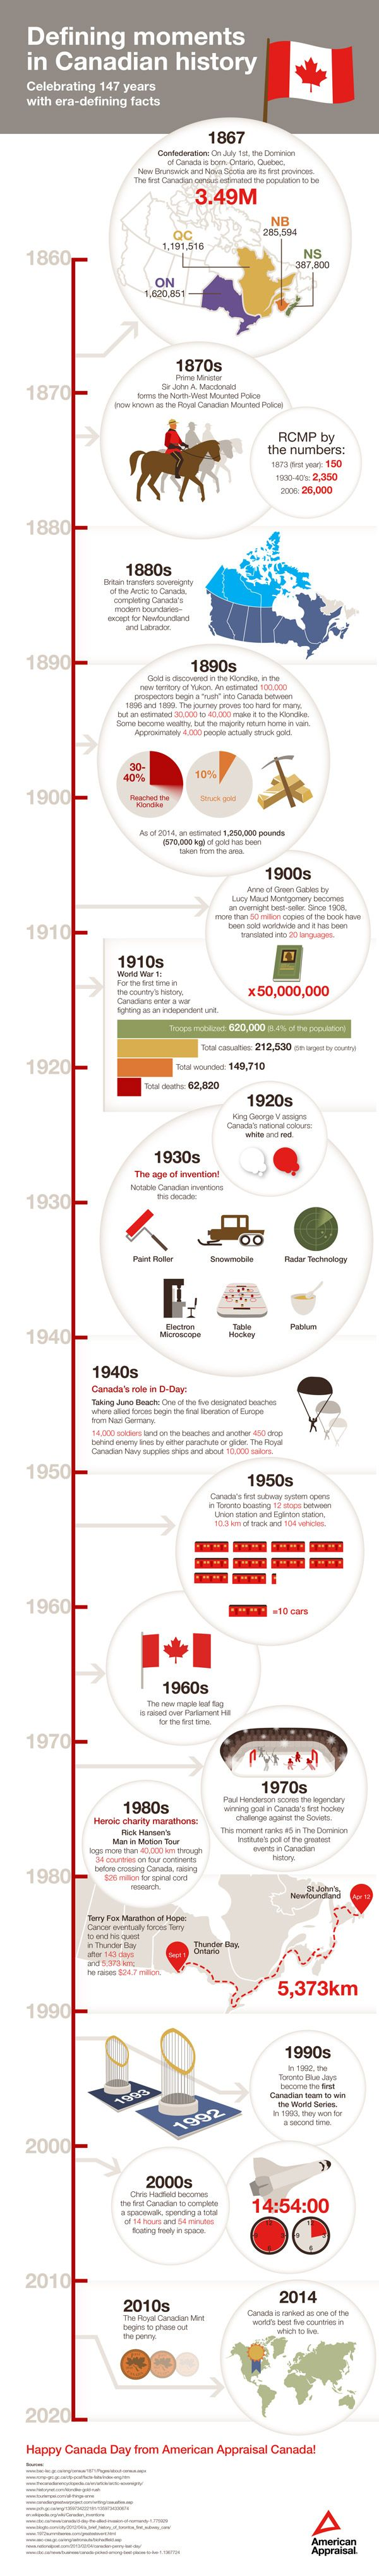 Defining Moments in Canadian History infographic- could be cool for company anniversary infographic